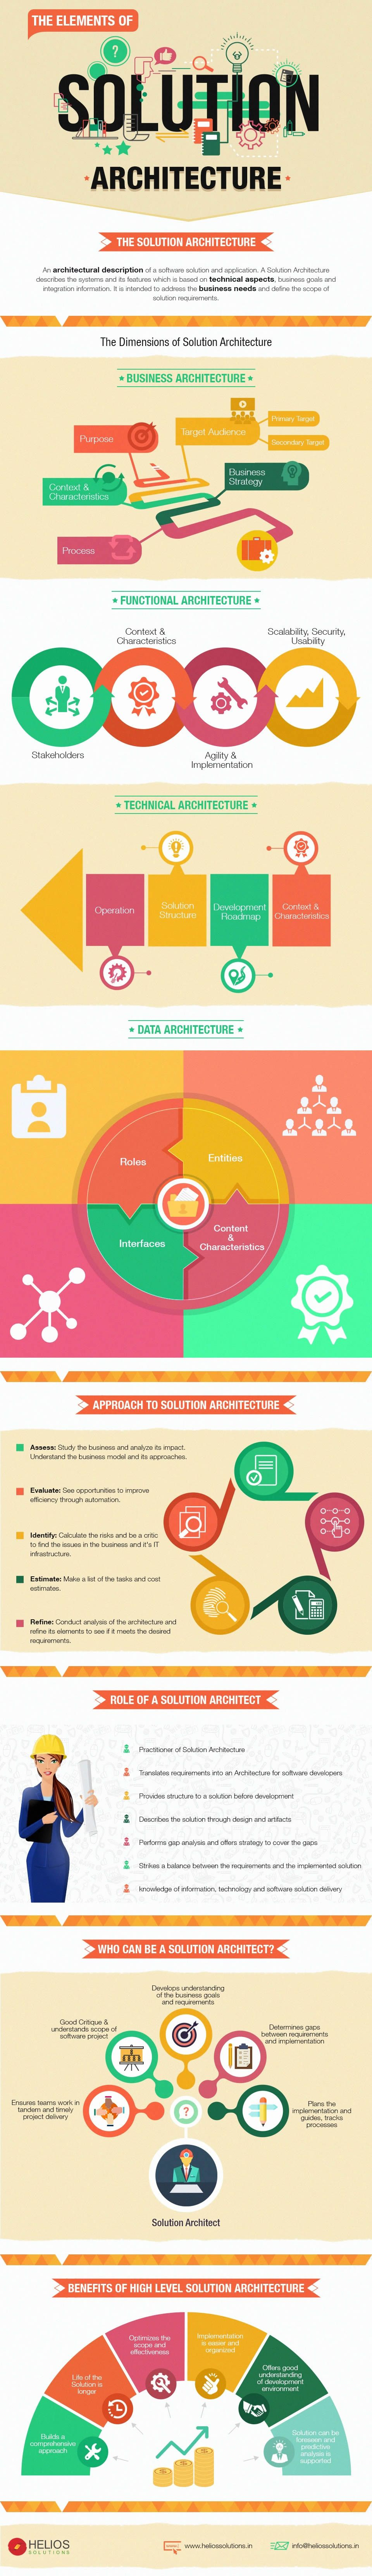 Understanding Solution Architecture [Infographic] by Helios